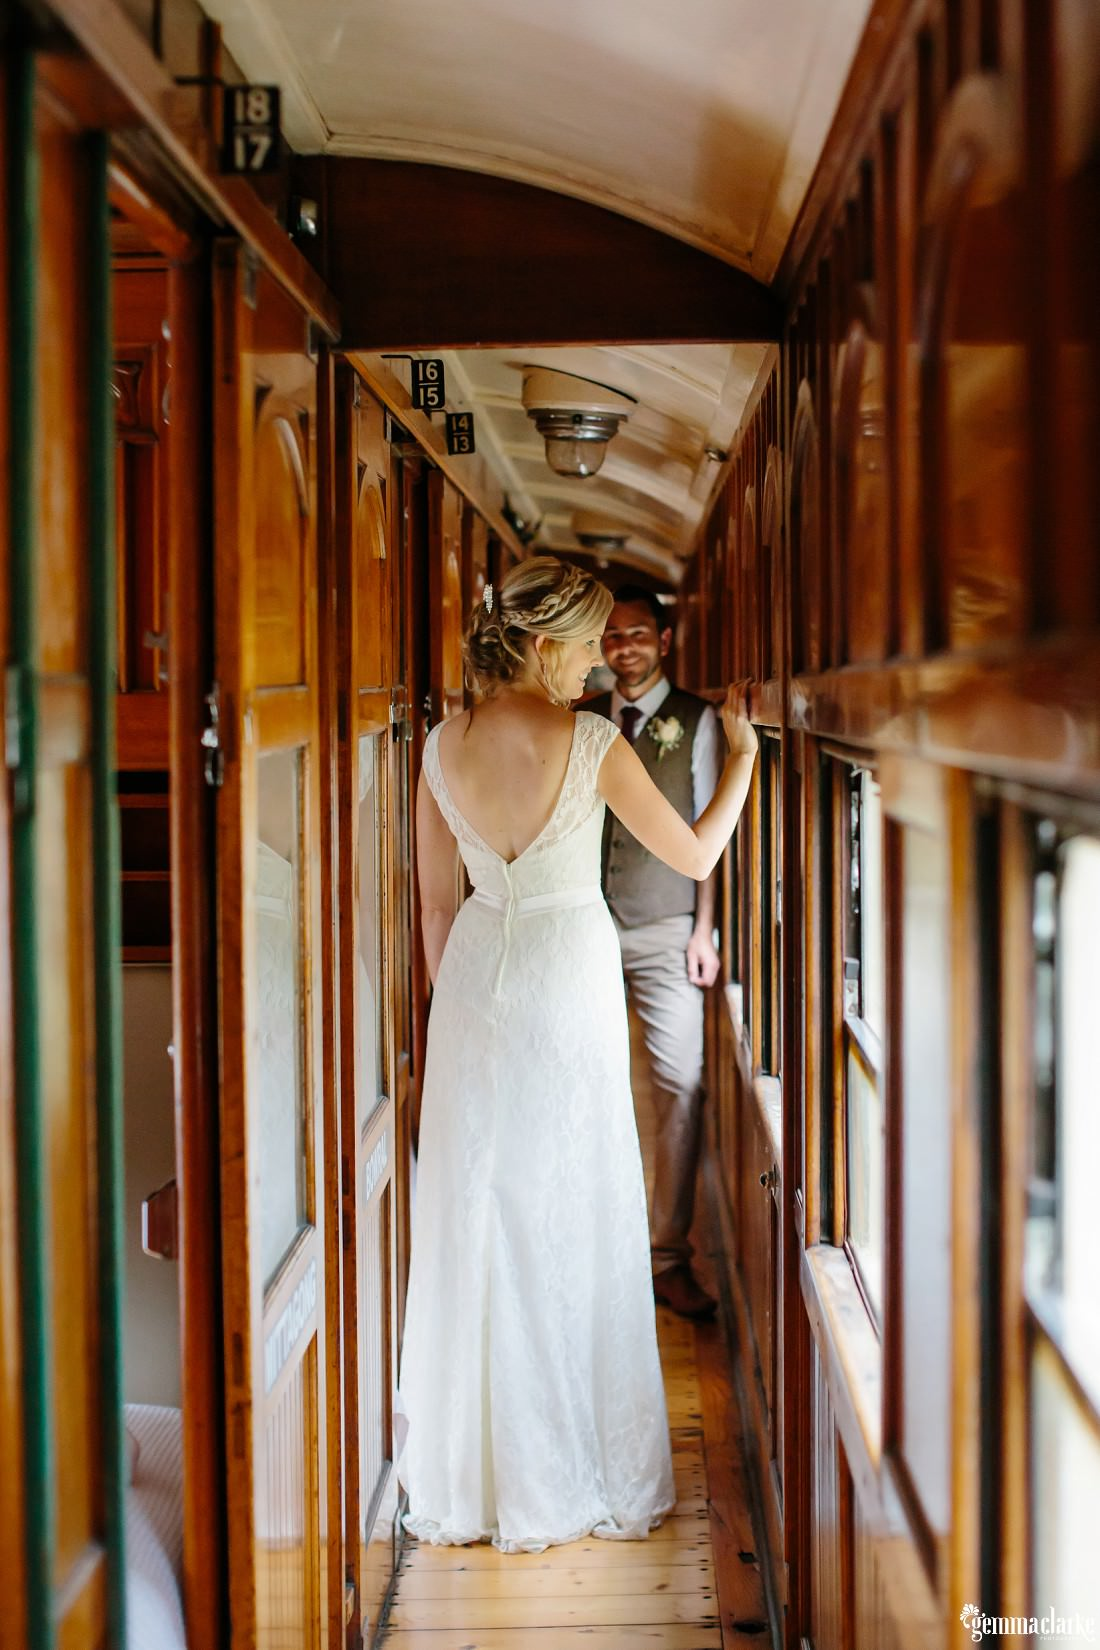 A bride and groom standing together in the corridor of a vintage train carriage